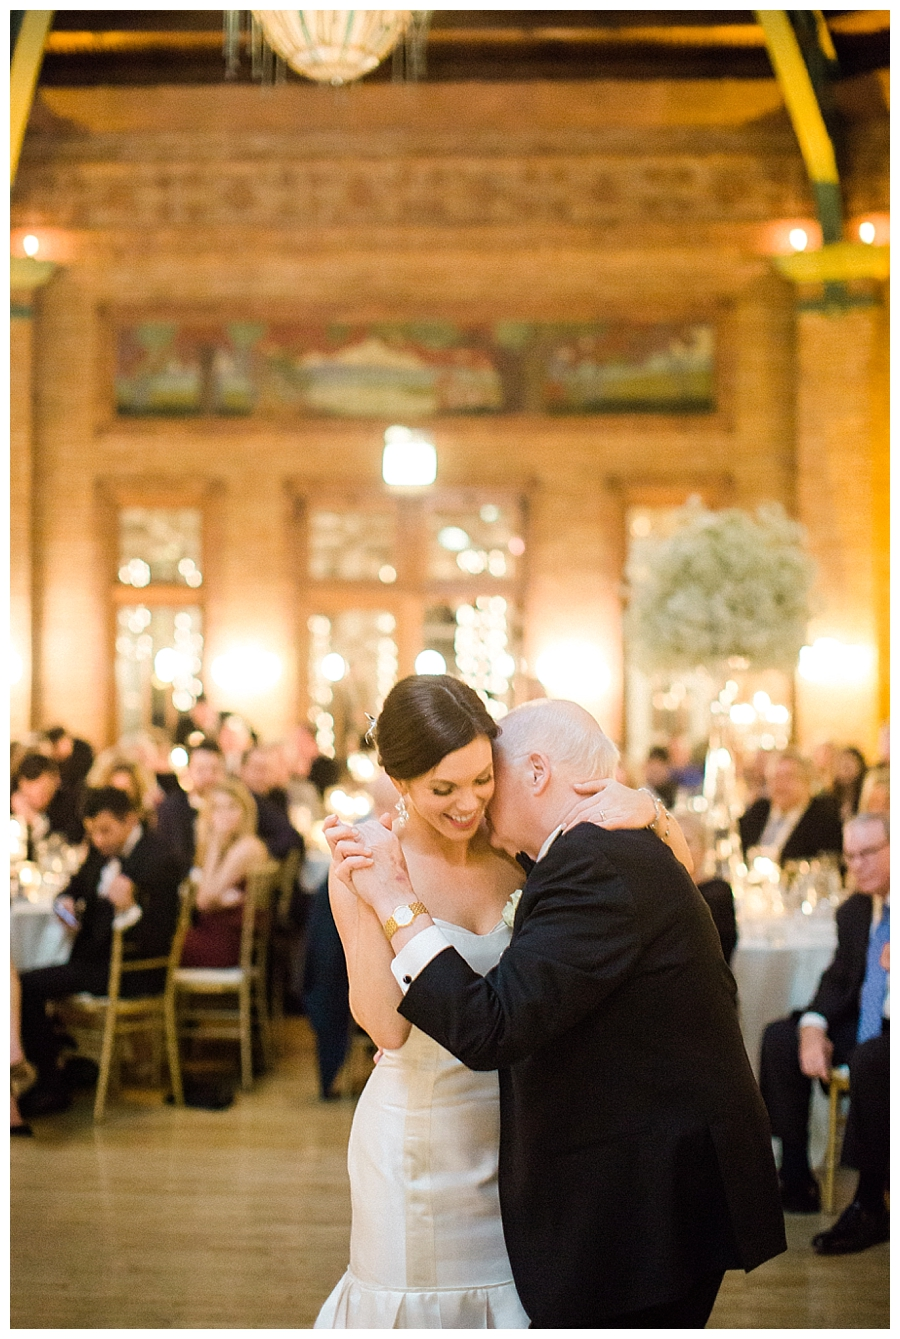 fine art wedding photography at Cafe Brauer in Lincoln Park, Chicago, Illinois